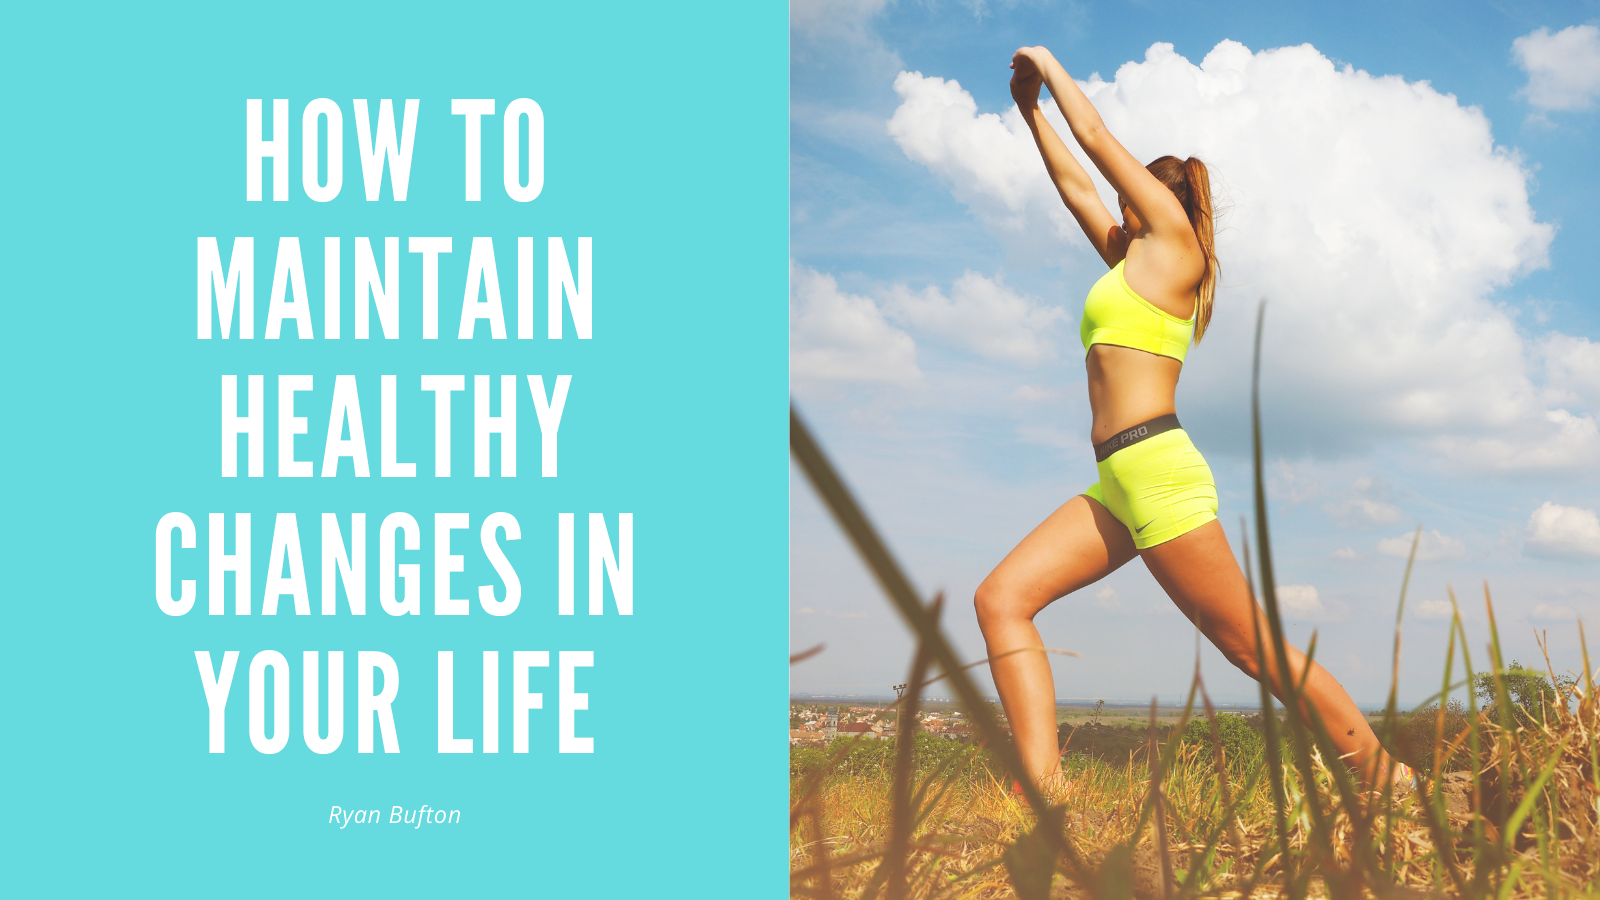 How To Maintain Healthy Changes In Your Life